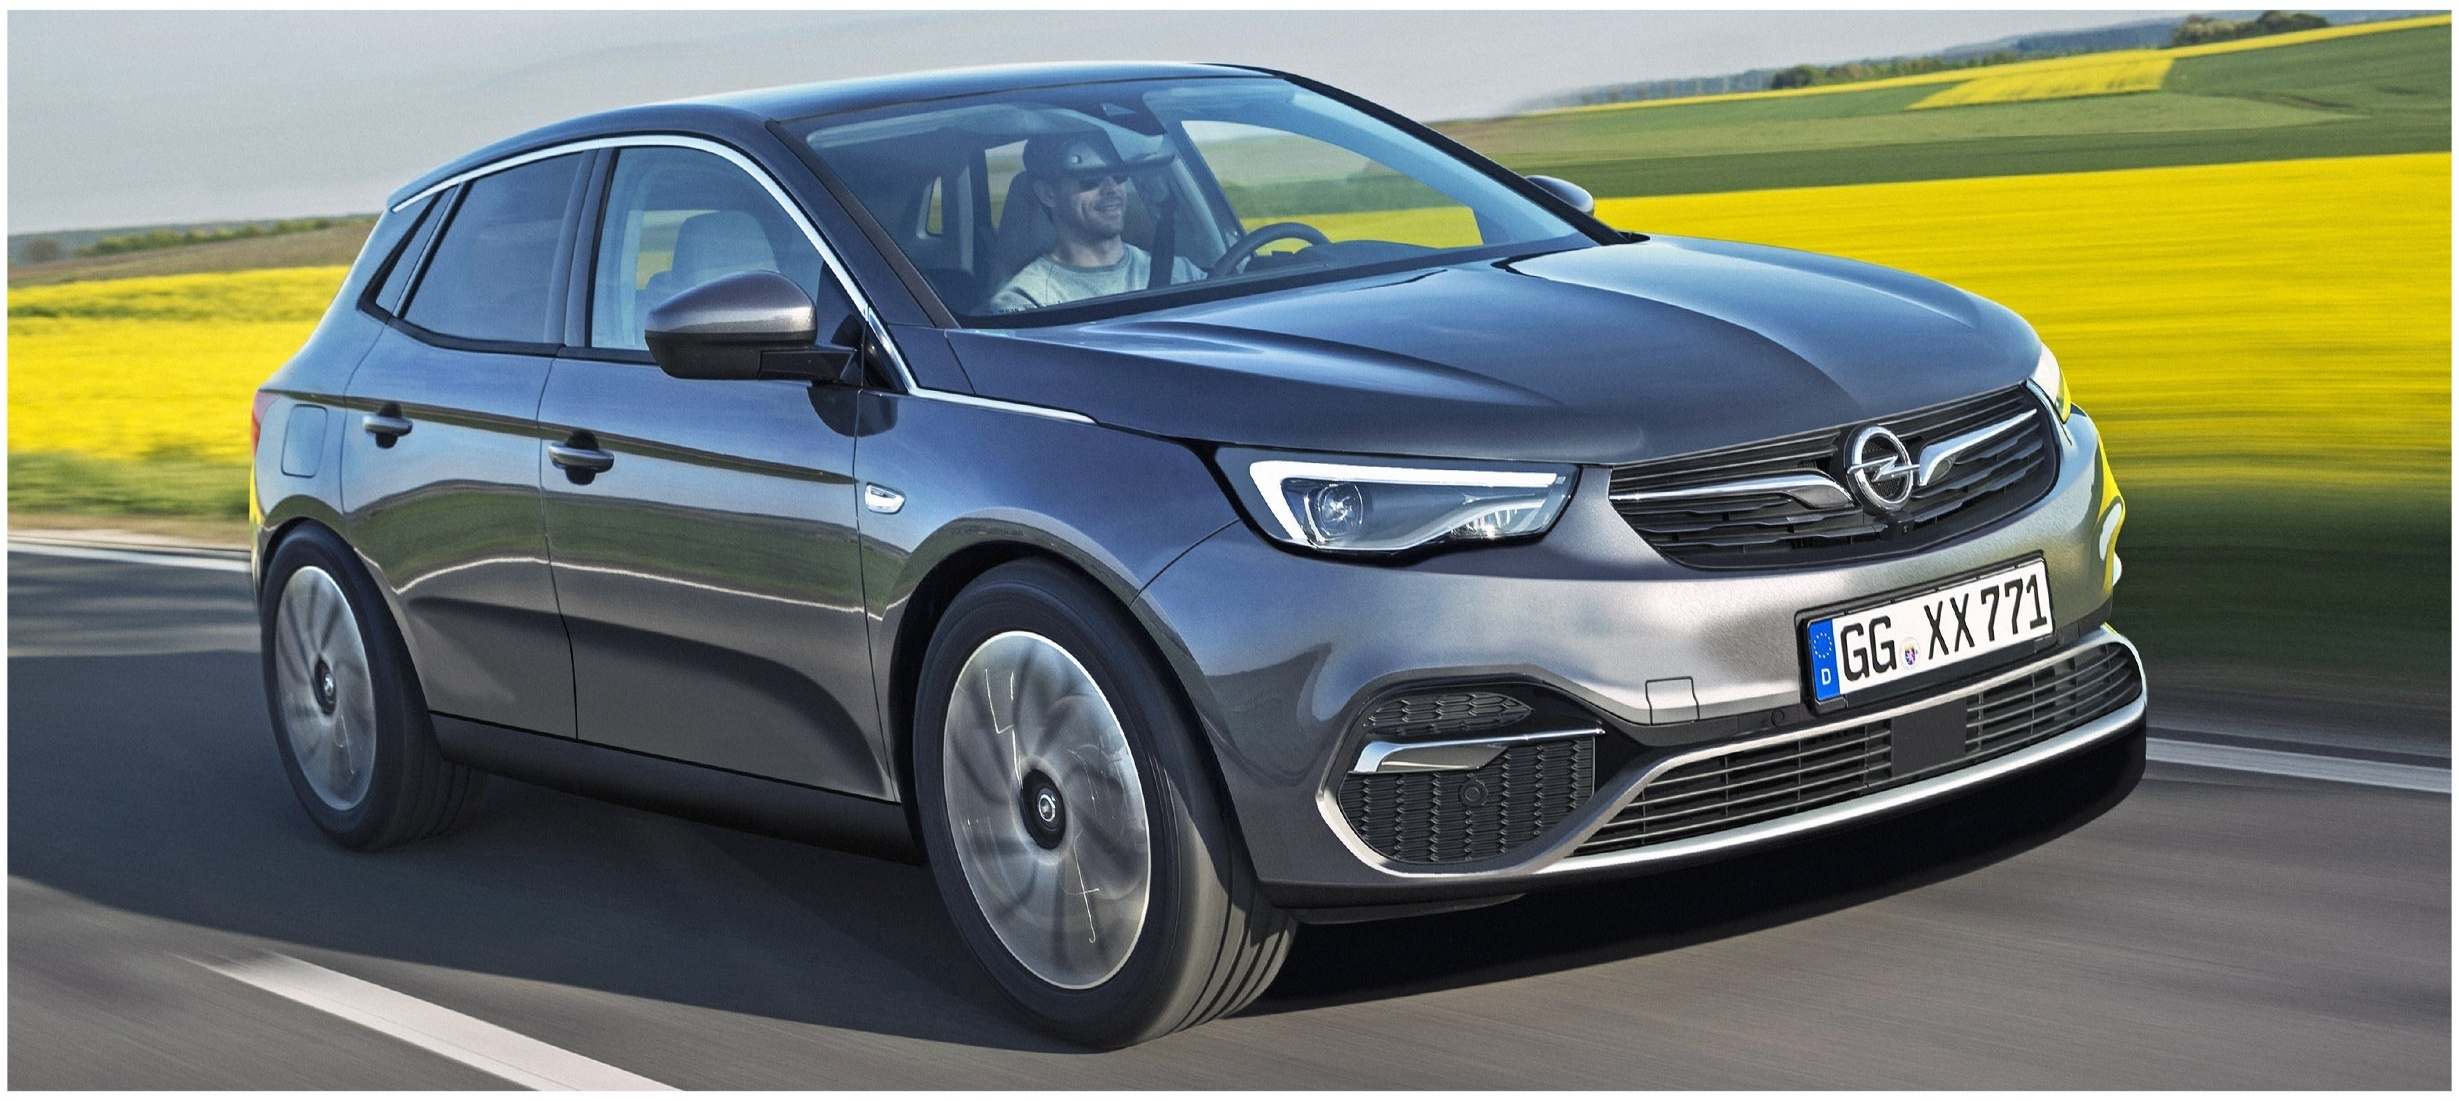 next astra expected in 2021 with psa platform phev